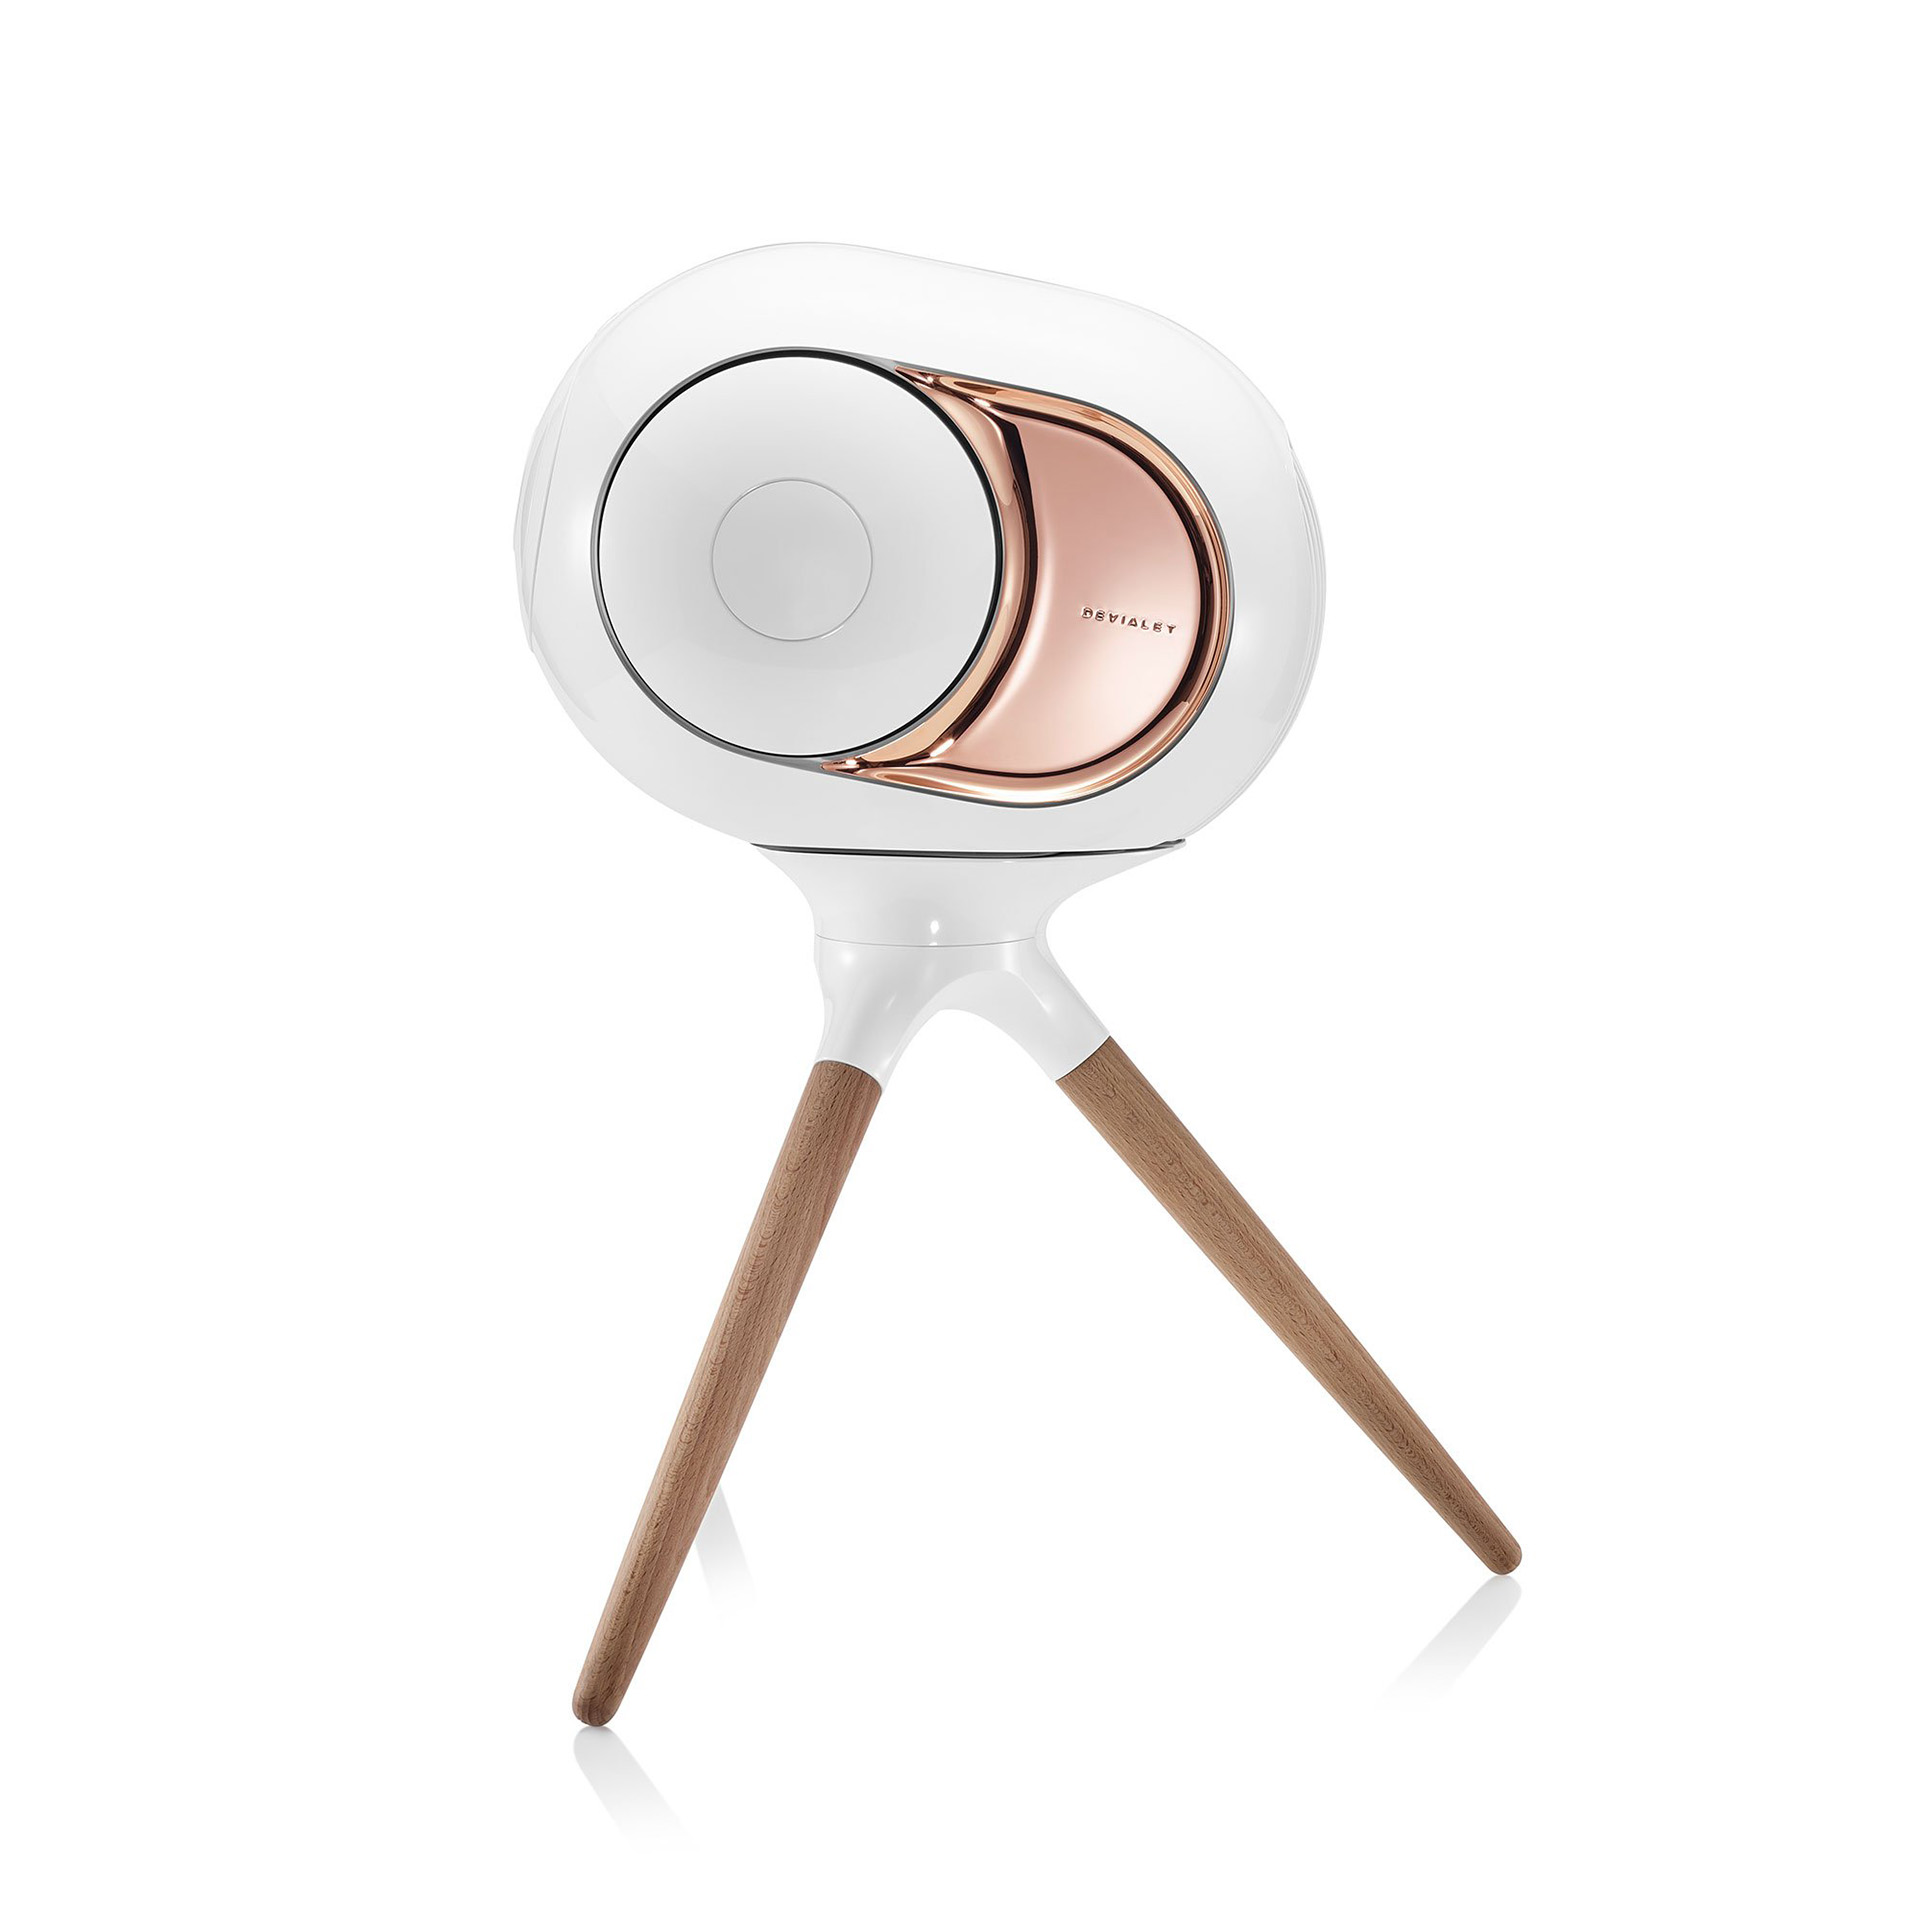 Devialet Treepod voor Phantom - Chattelin Audio Systems